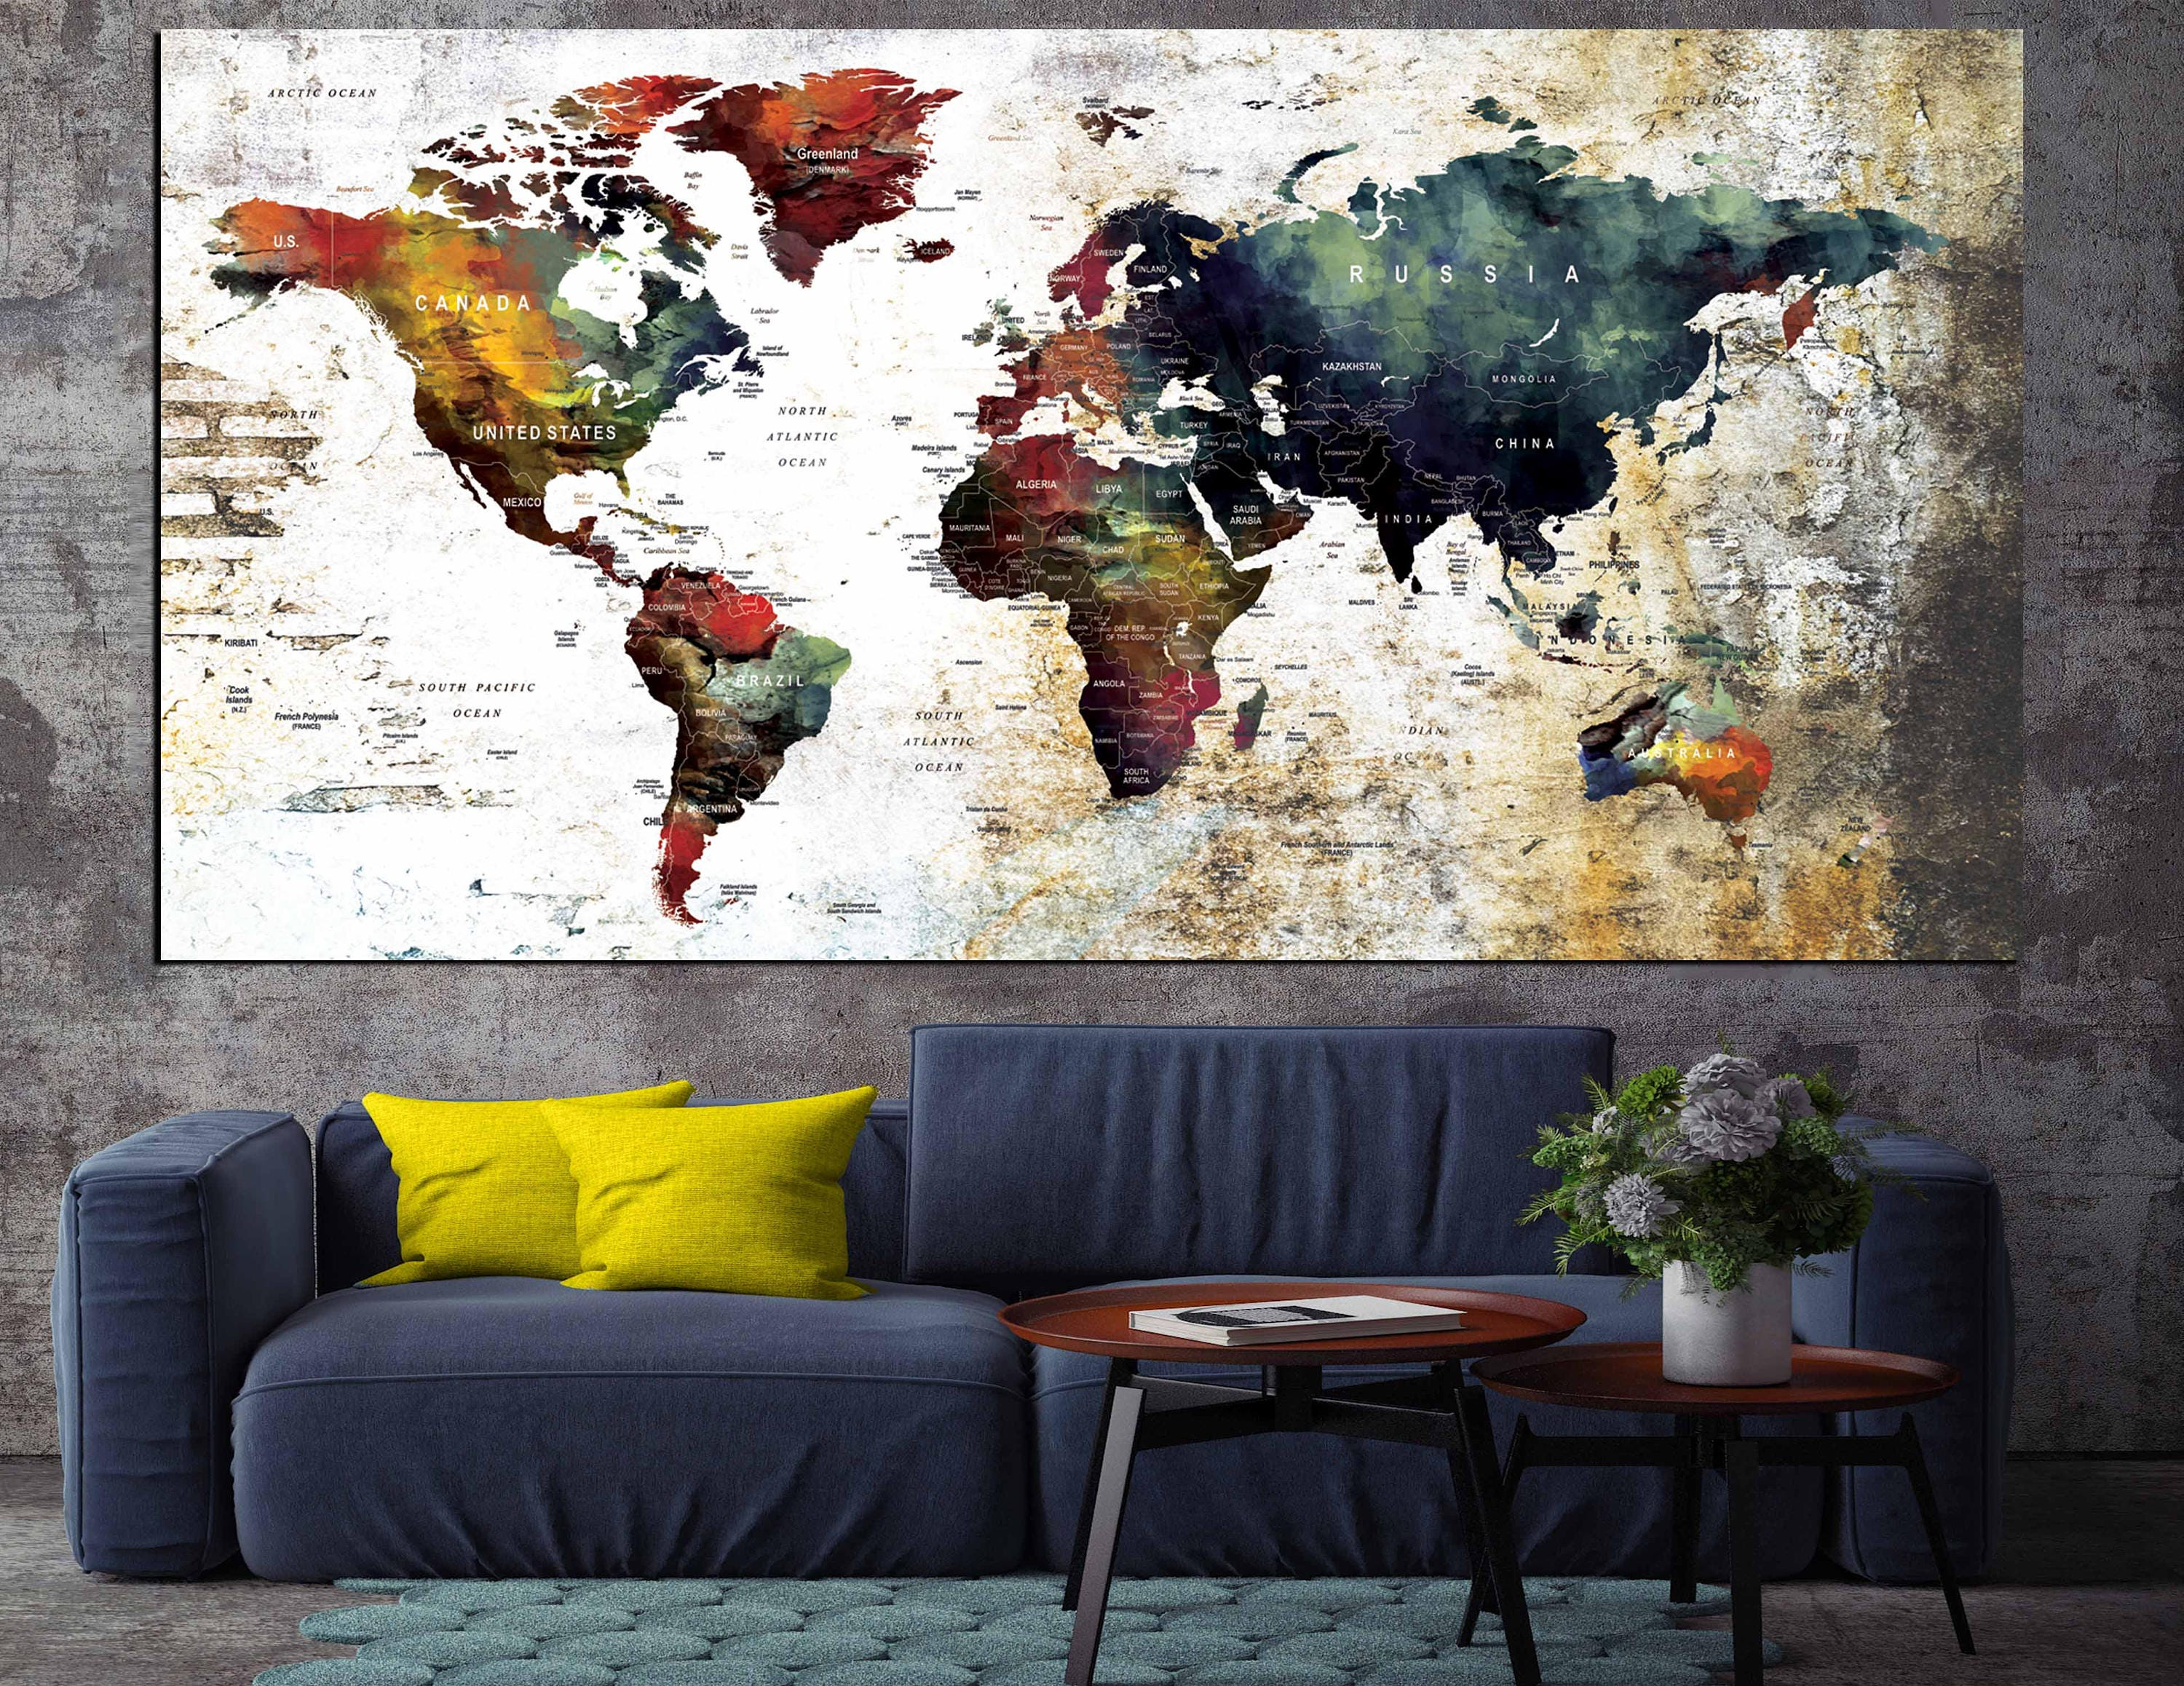 World map largeworld map canvasworld map wall artcustom travel world map largeworld map canvasworld map wall artcustom travel mappush pin map canvastravel map artpush pin map canvasworld map art gumiabroncs Image collections